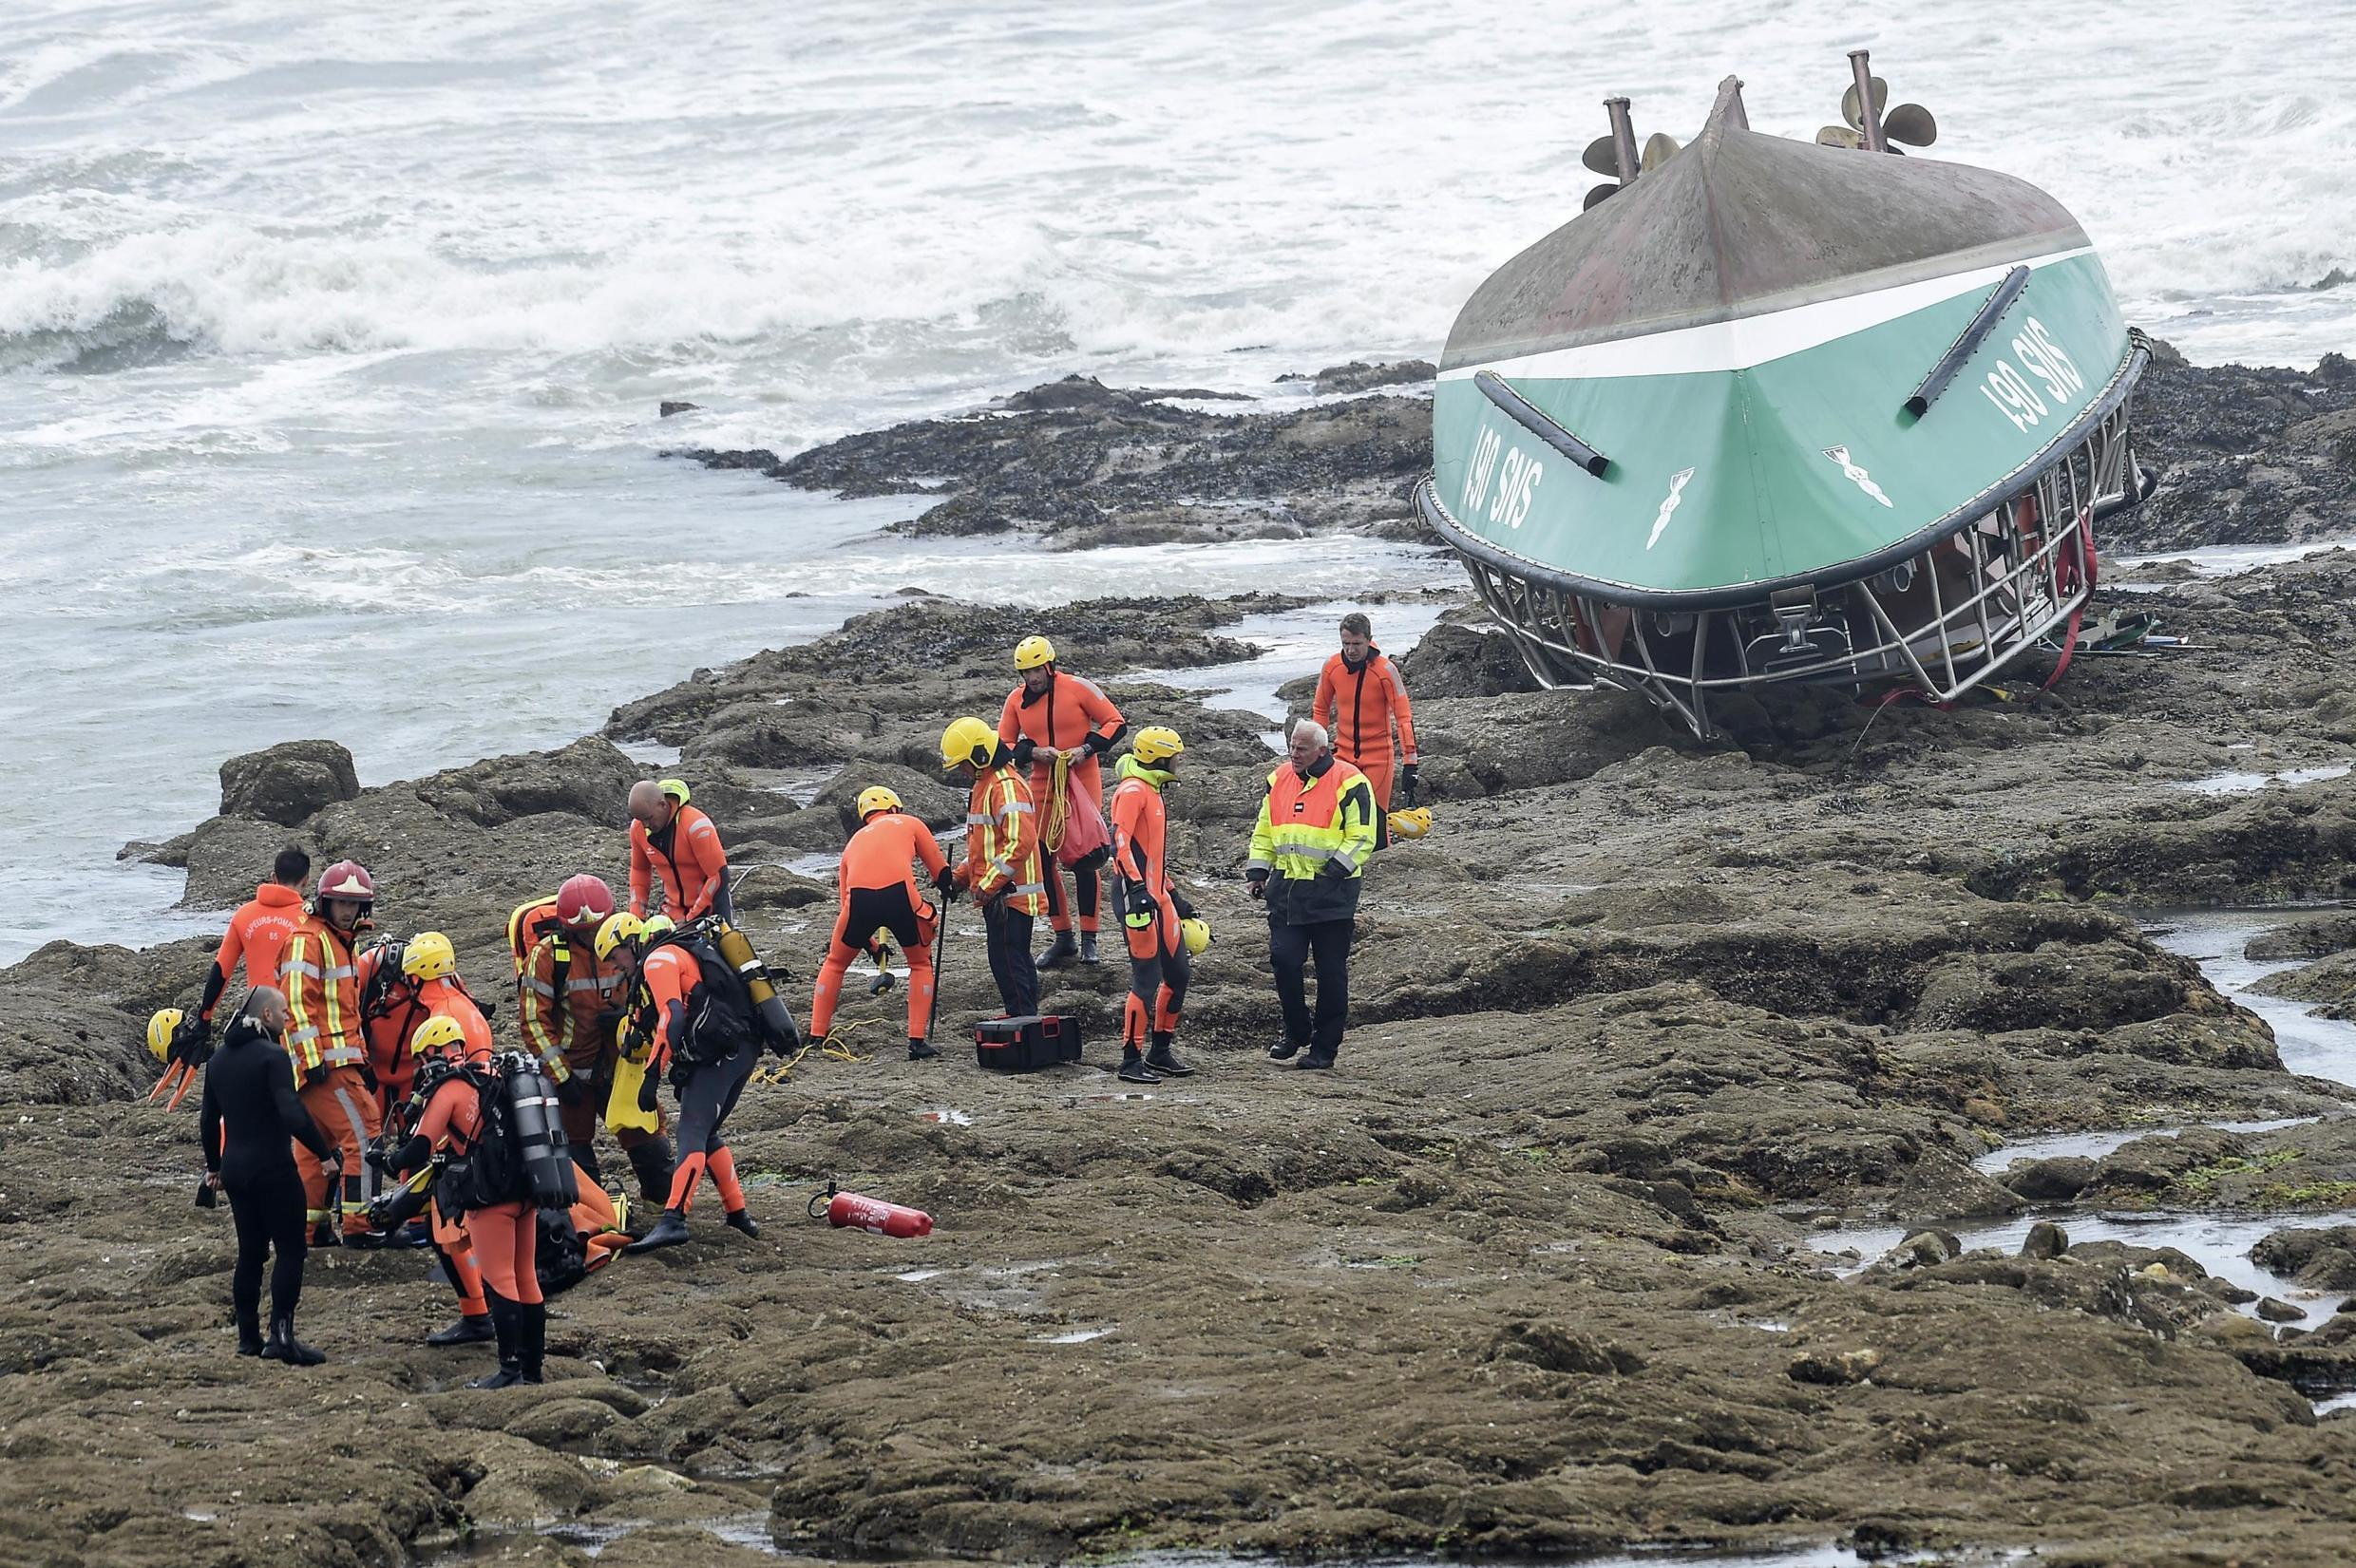 Rescuers work near the capsized boat of the National Society of Sea Rescue (SNSM) on a beach of Les Sables-d'Olonne, where three rescuers perished during storm Miguel on 7 June, 2019.